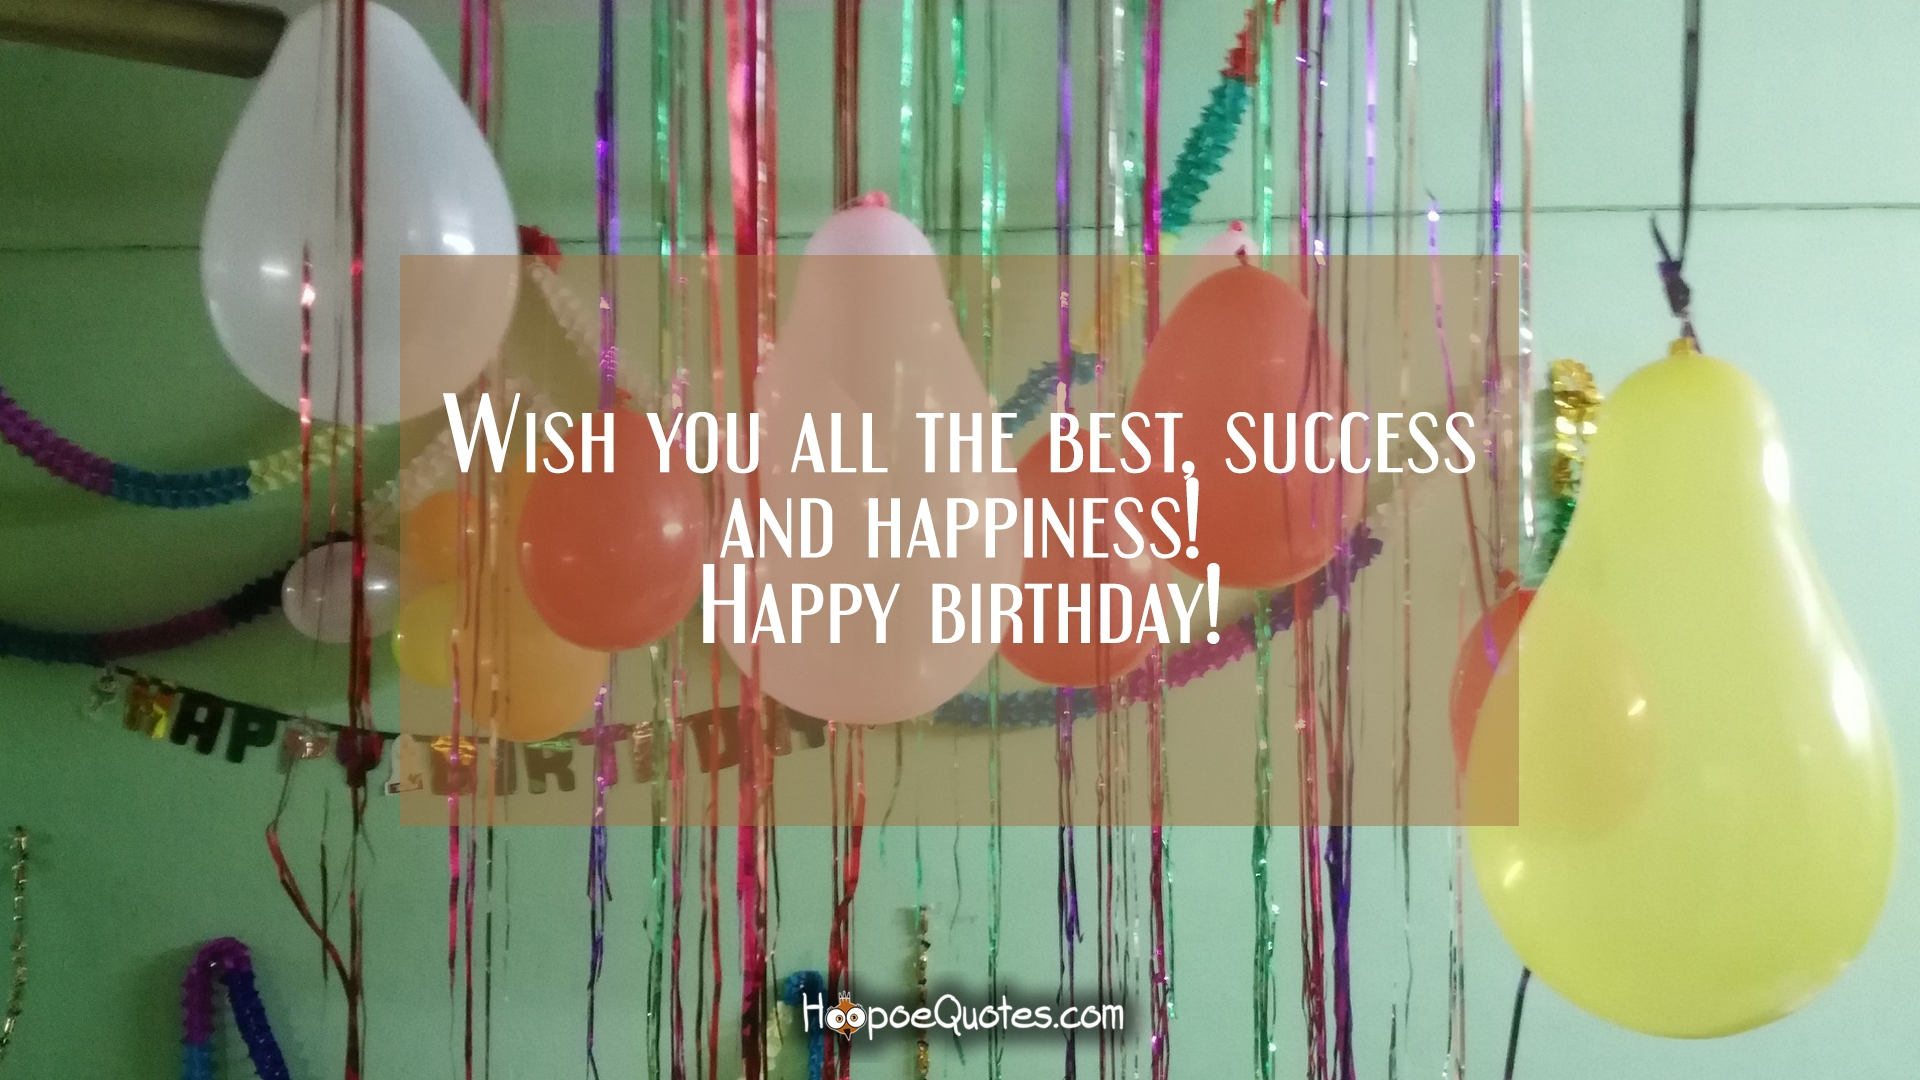 Birthday Wishes For Boyfriend Dan Artinya ~ Birthday wishes for someone special in your life hoopoequotes